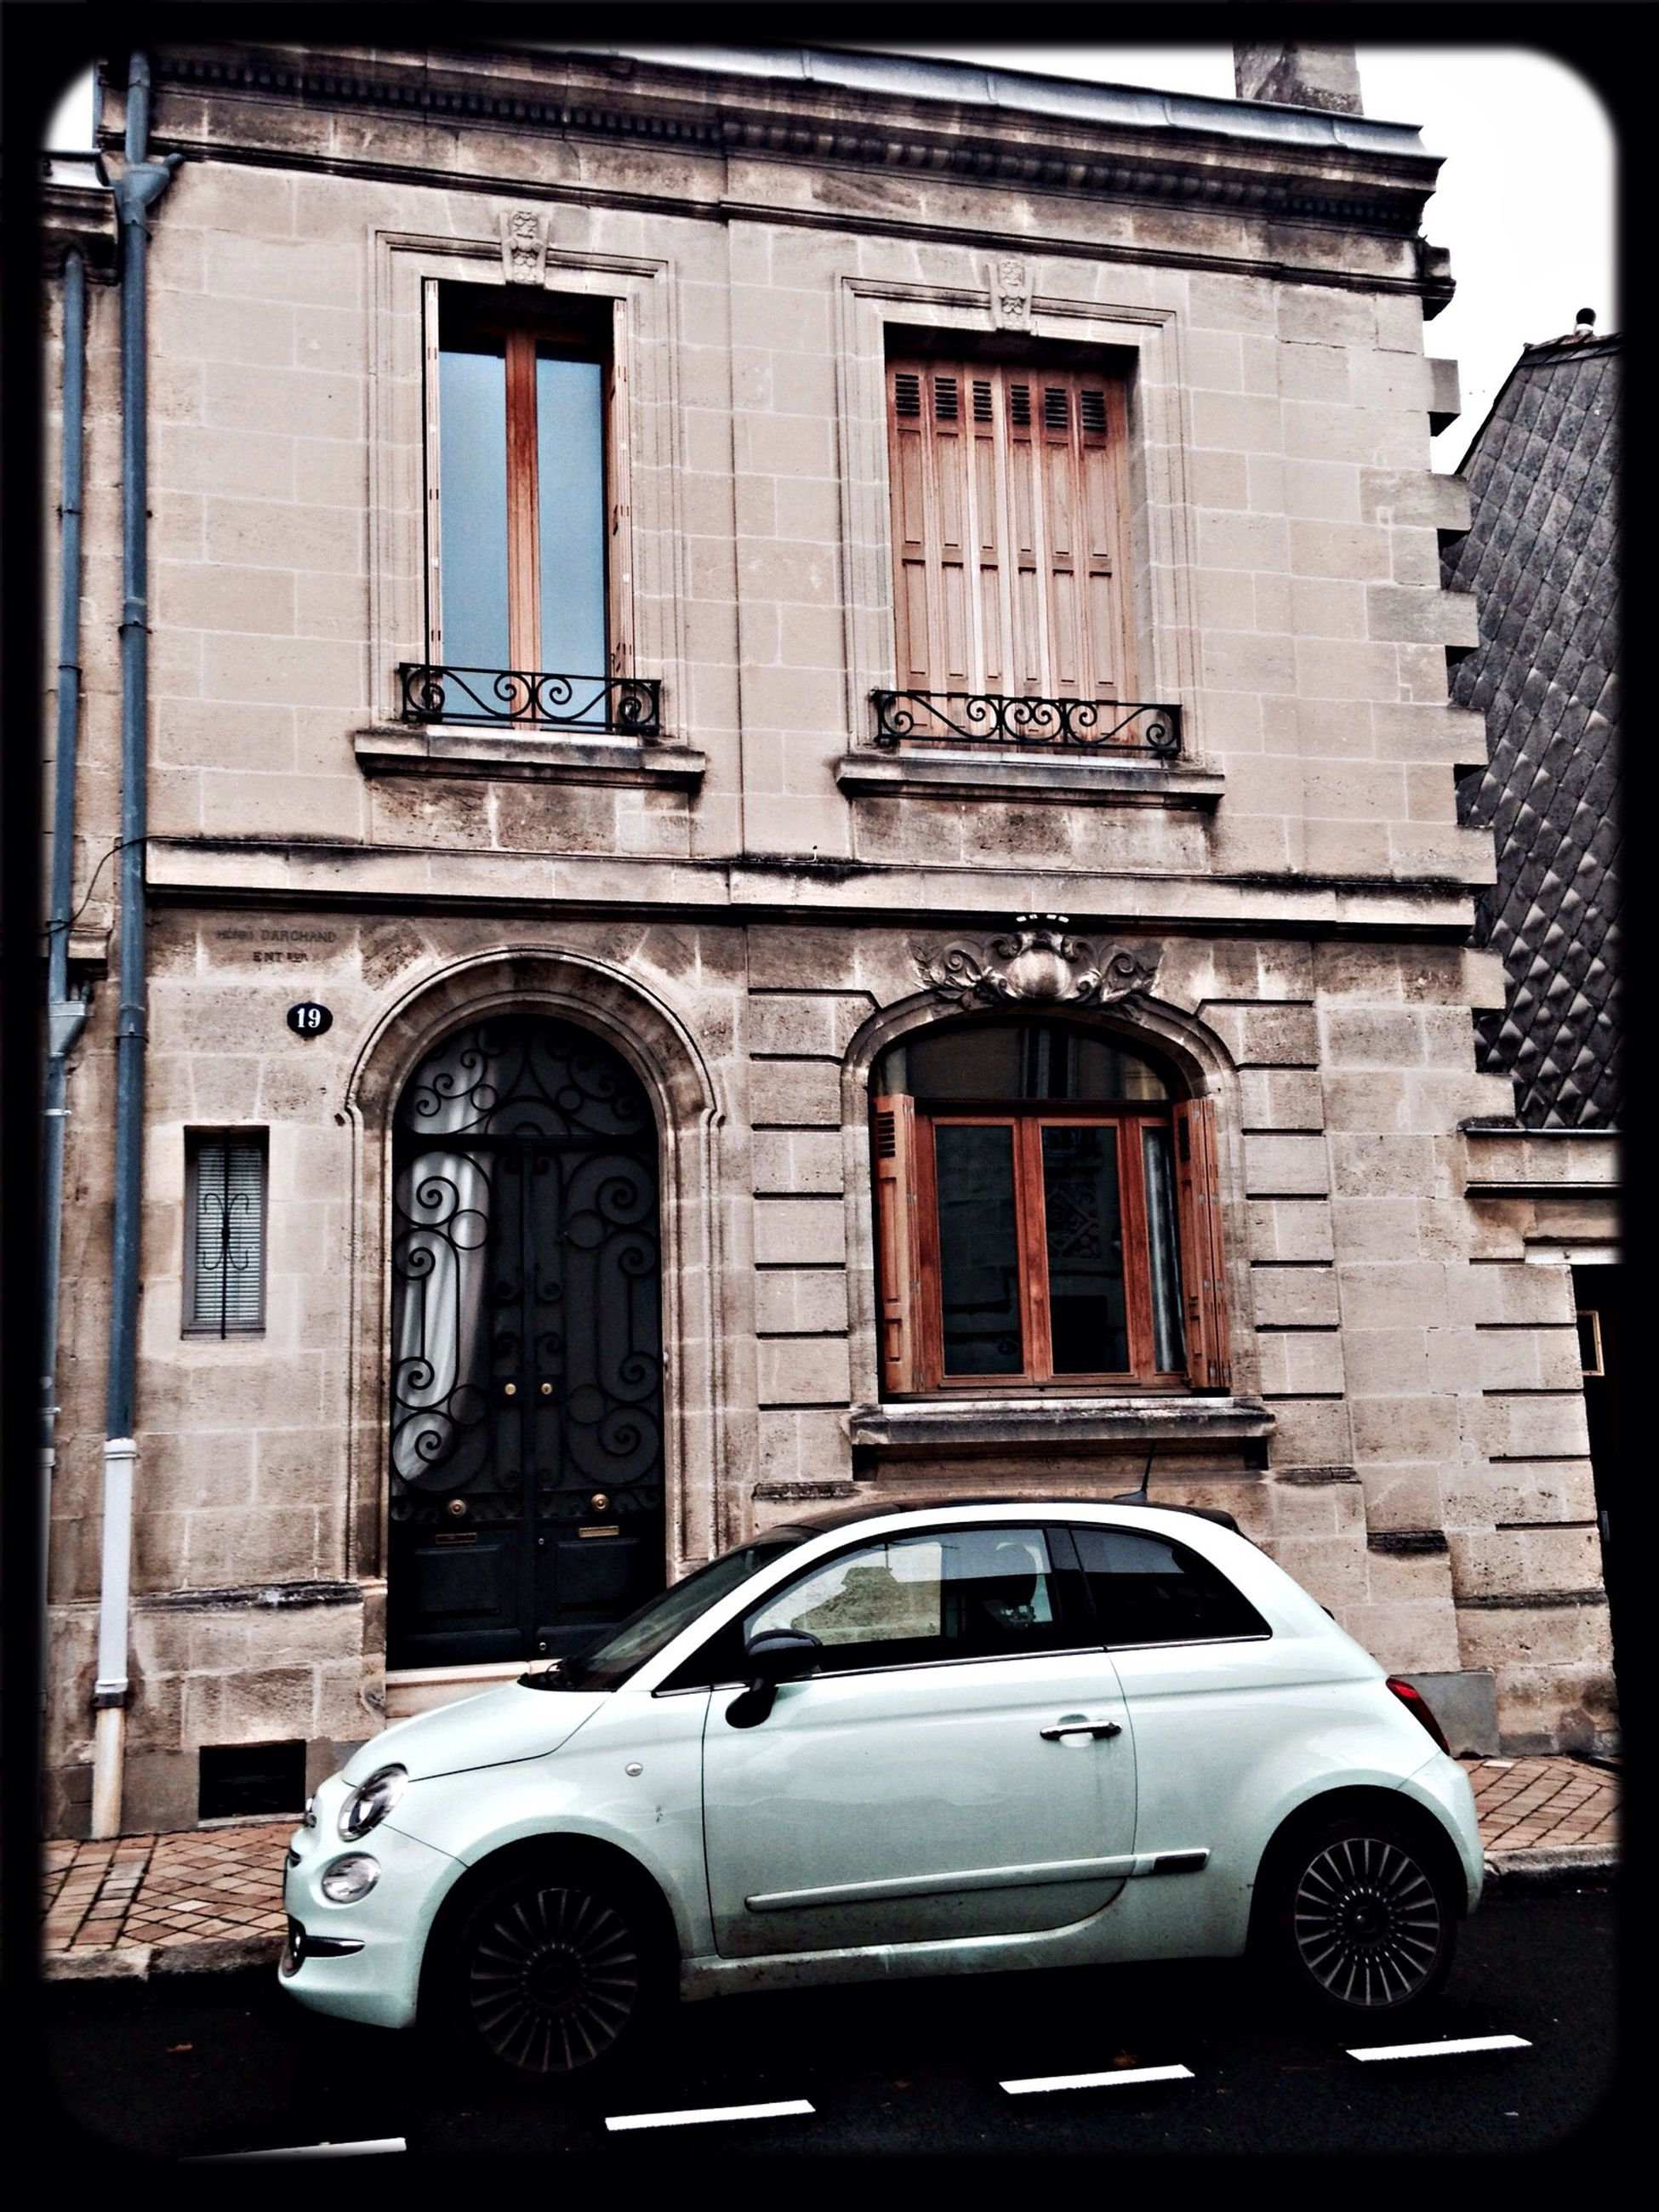 building exterior, built structure, architecture, transportation, window, car, land vehicle, mode of transport, no people, city, outdoors, day